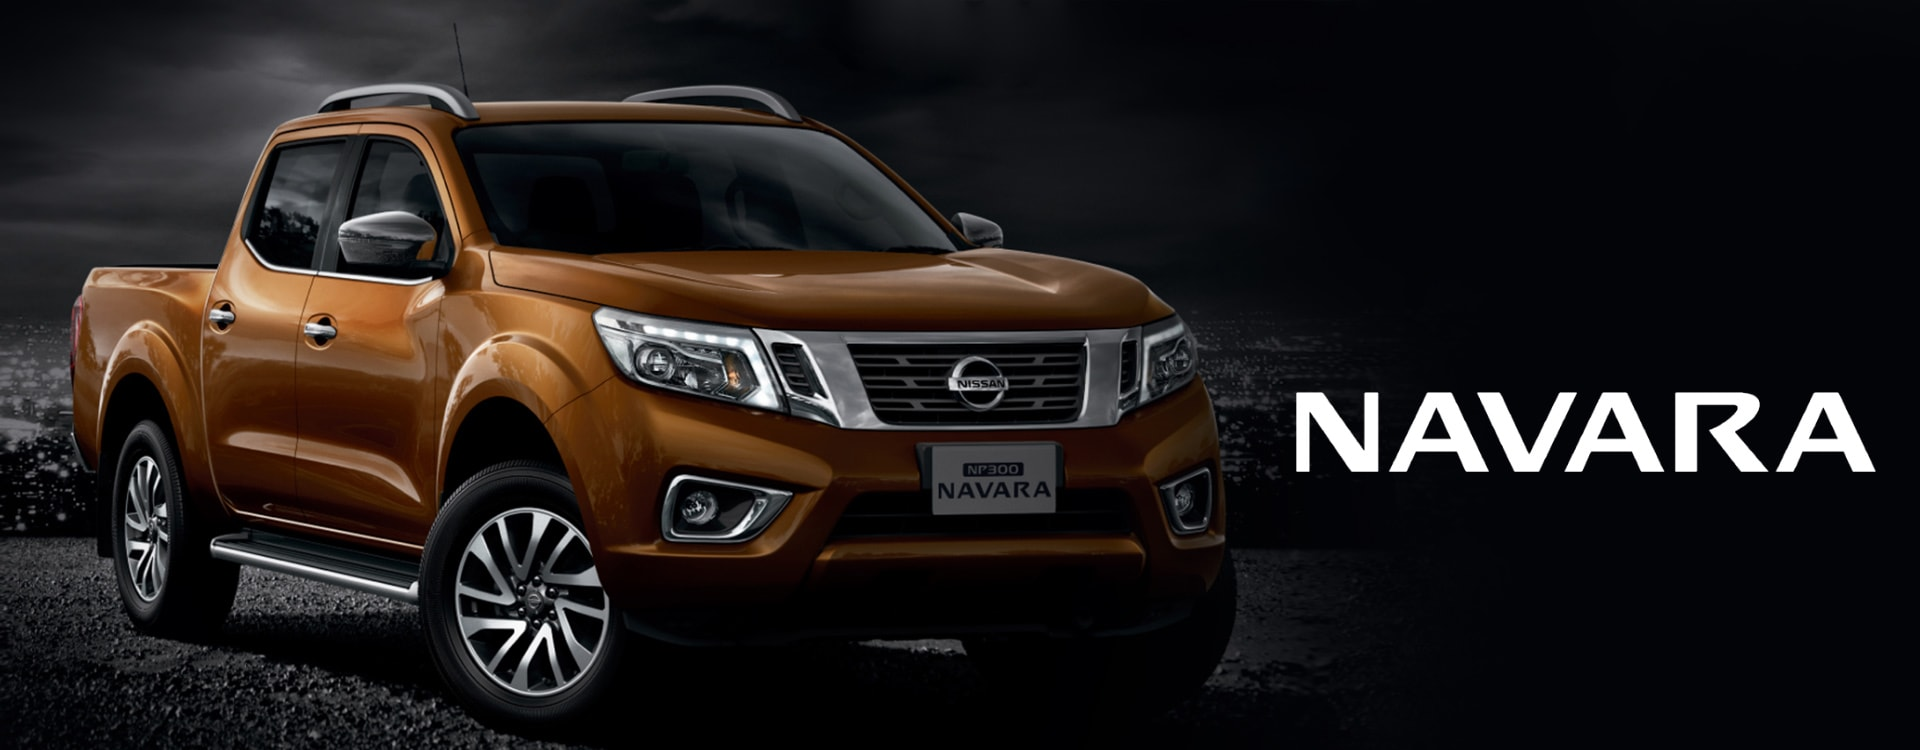 Nissan Sri Lanka Cars Commercial Vehicles Crossovers SUVs